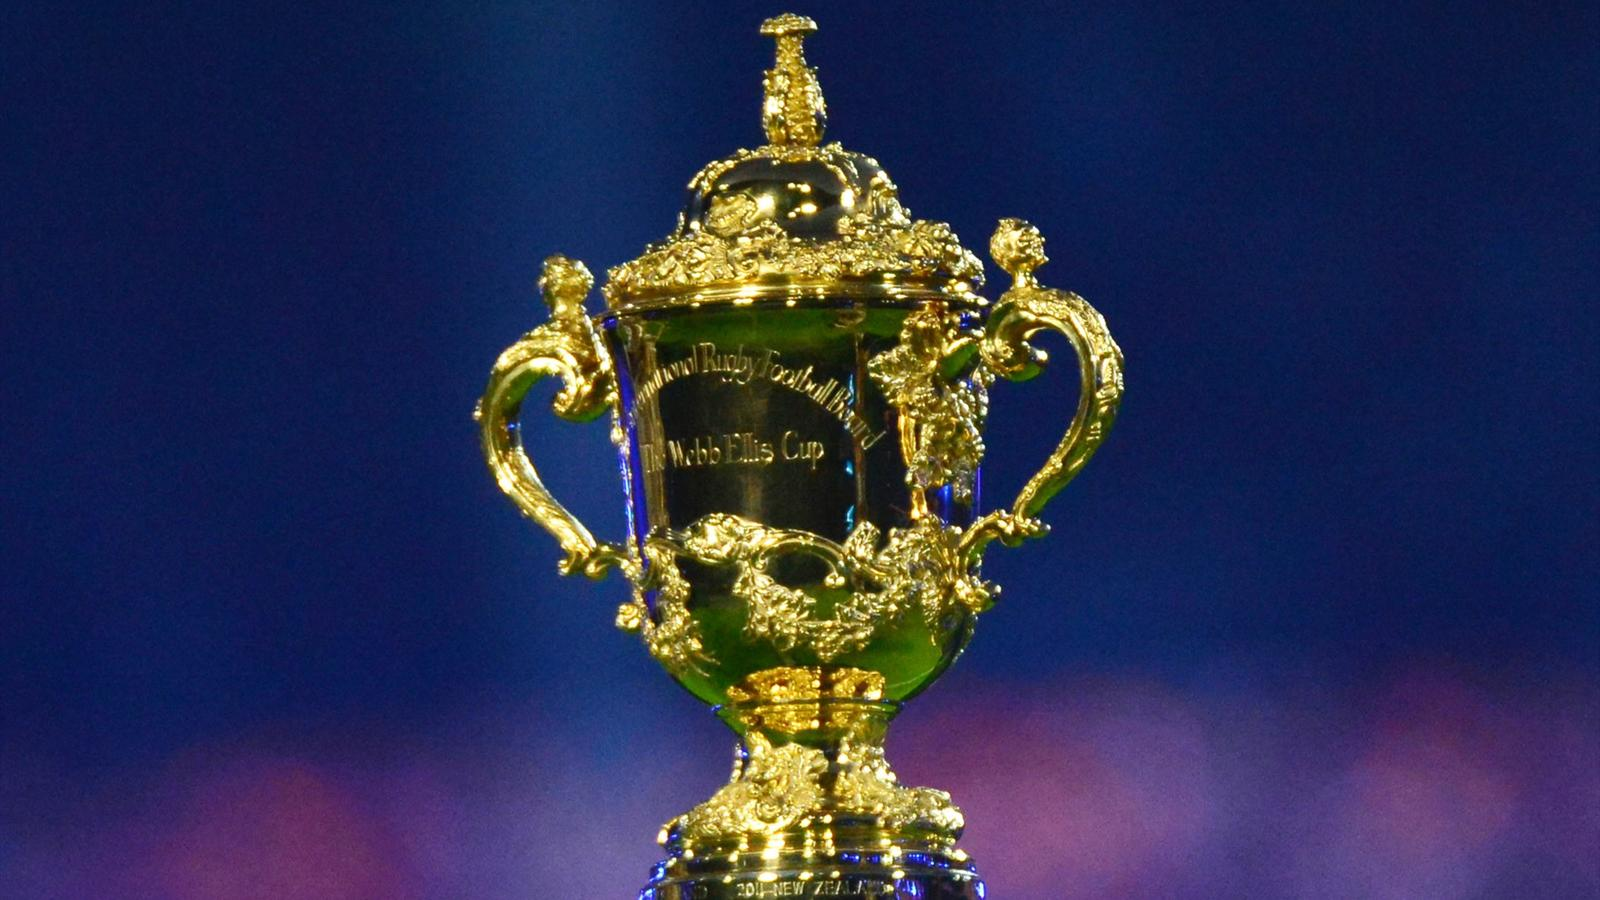 Championnat d 39 europe oceania cup rep chage on vous - Calendrier coupe de monde rugby 2015 ...